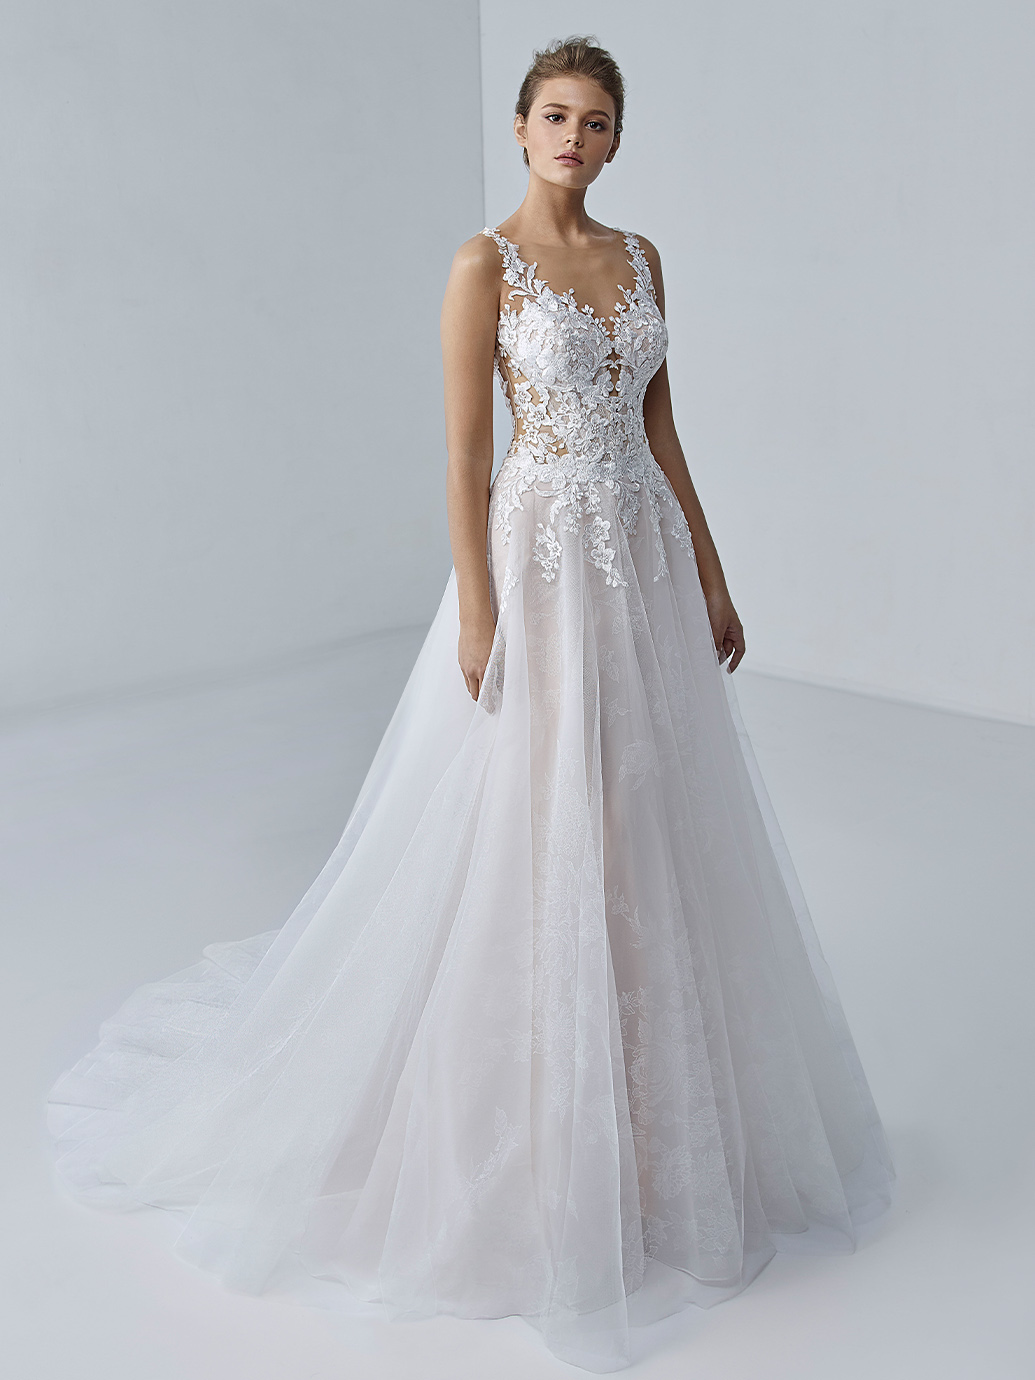 étoile-by-enzoani-2021-Dress-Finder-Ella